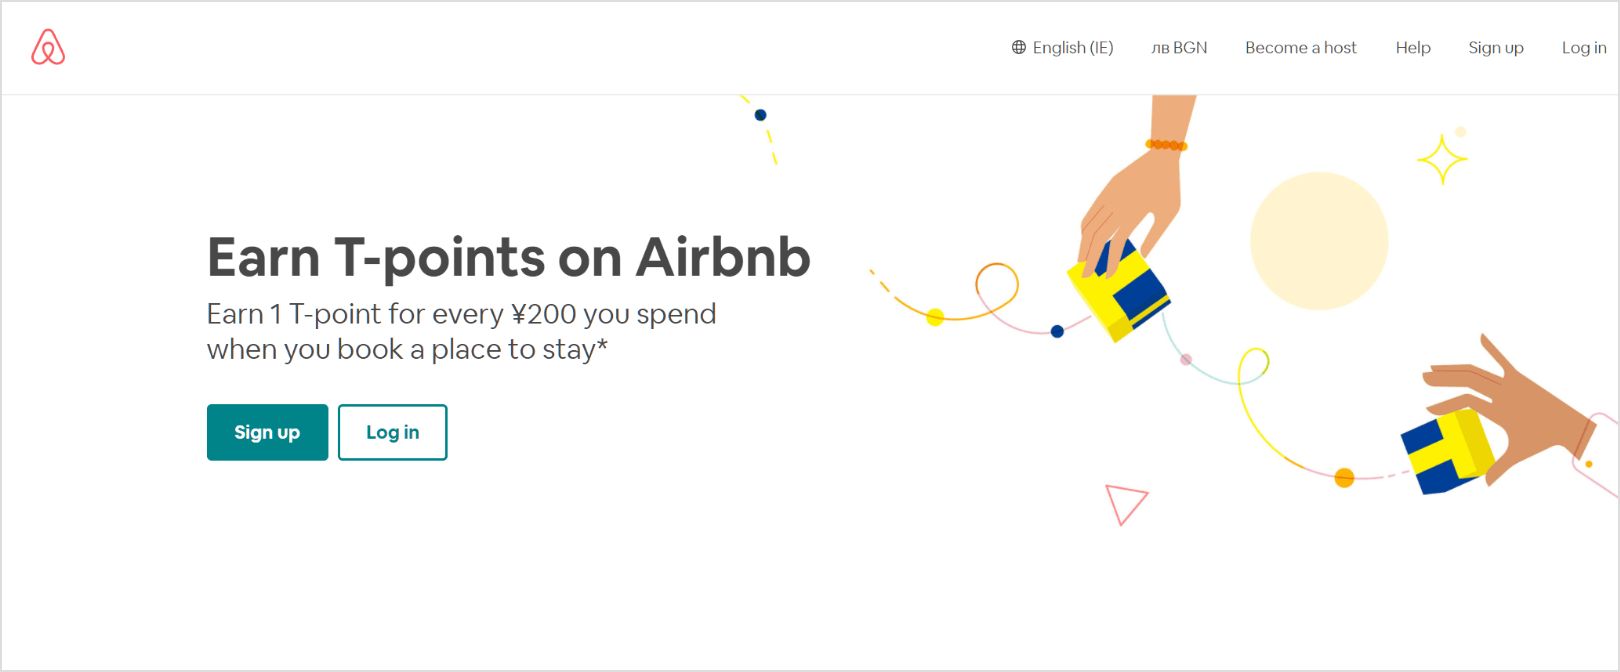 Airbnb Earn T-points